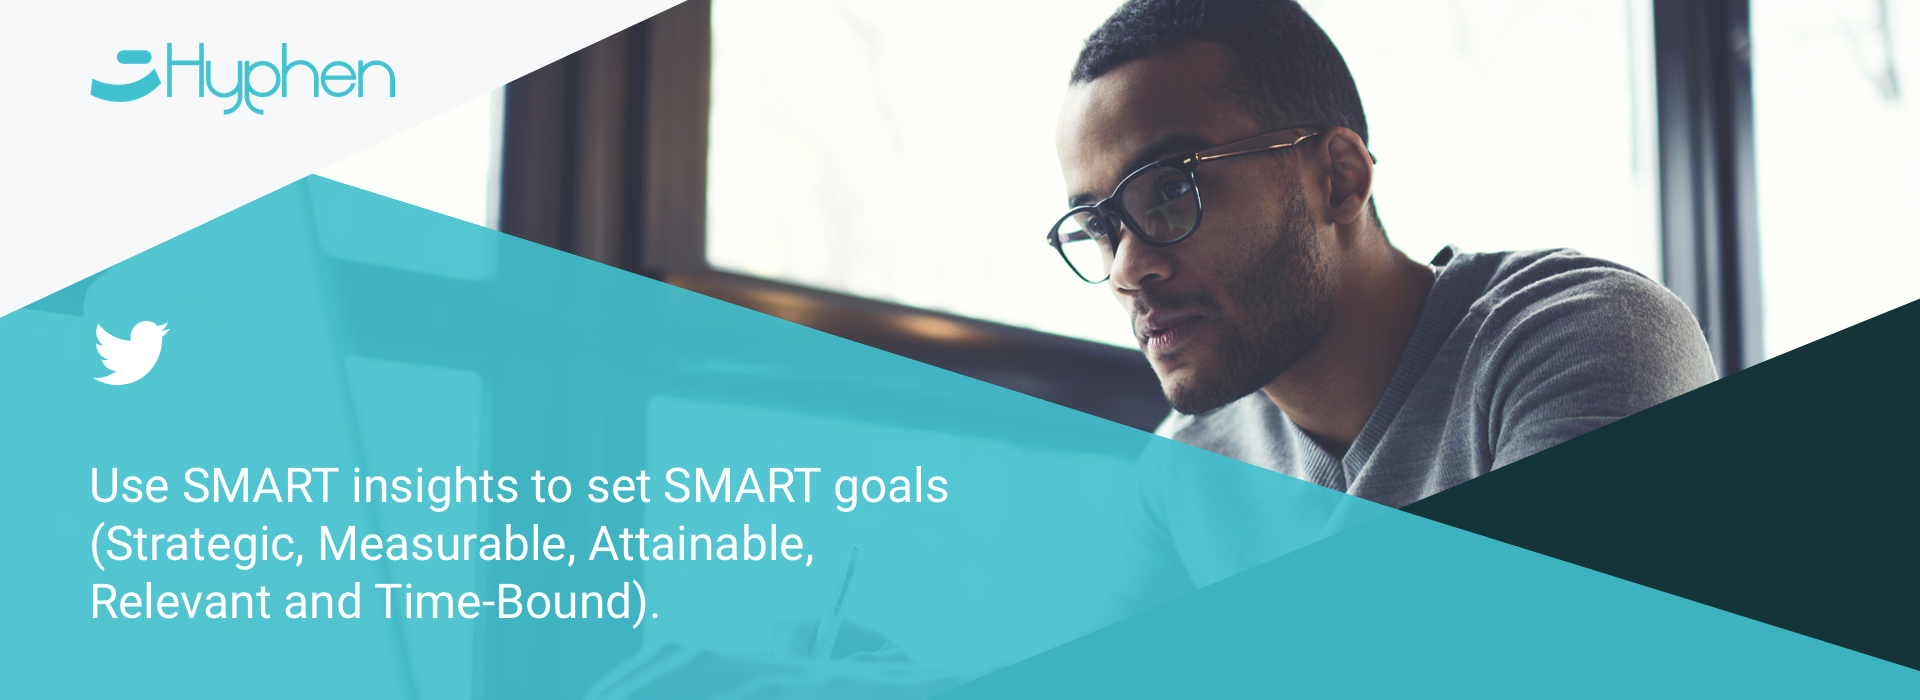 Use SMART insights to set SMART goals (Strategic, Measurable, Attainable, Relevant and Time-Bound).